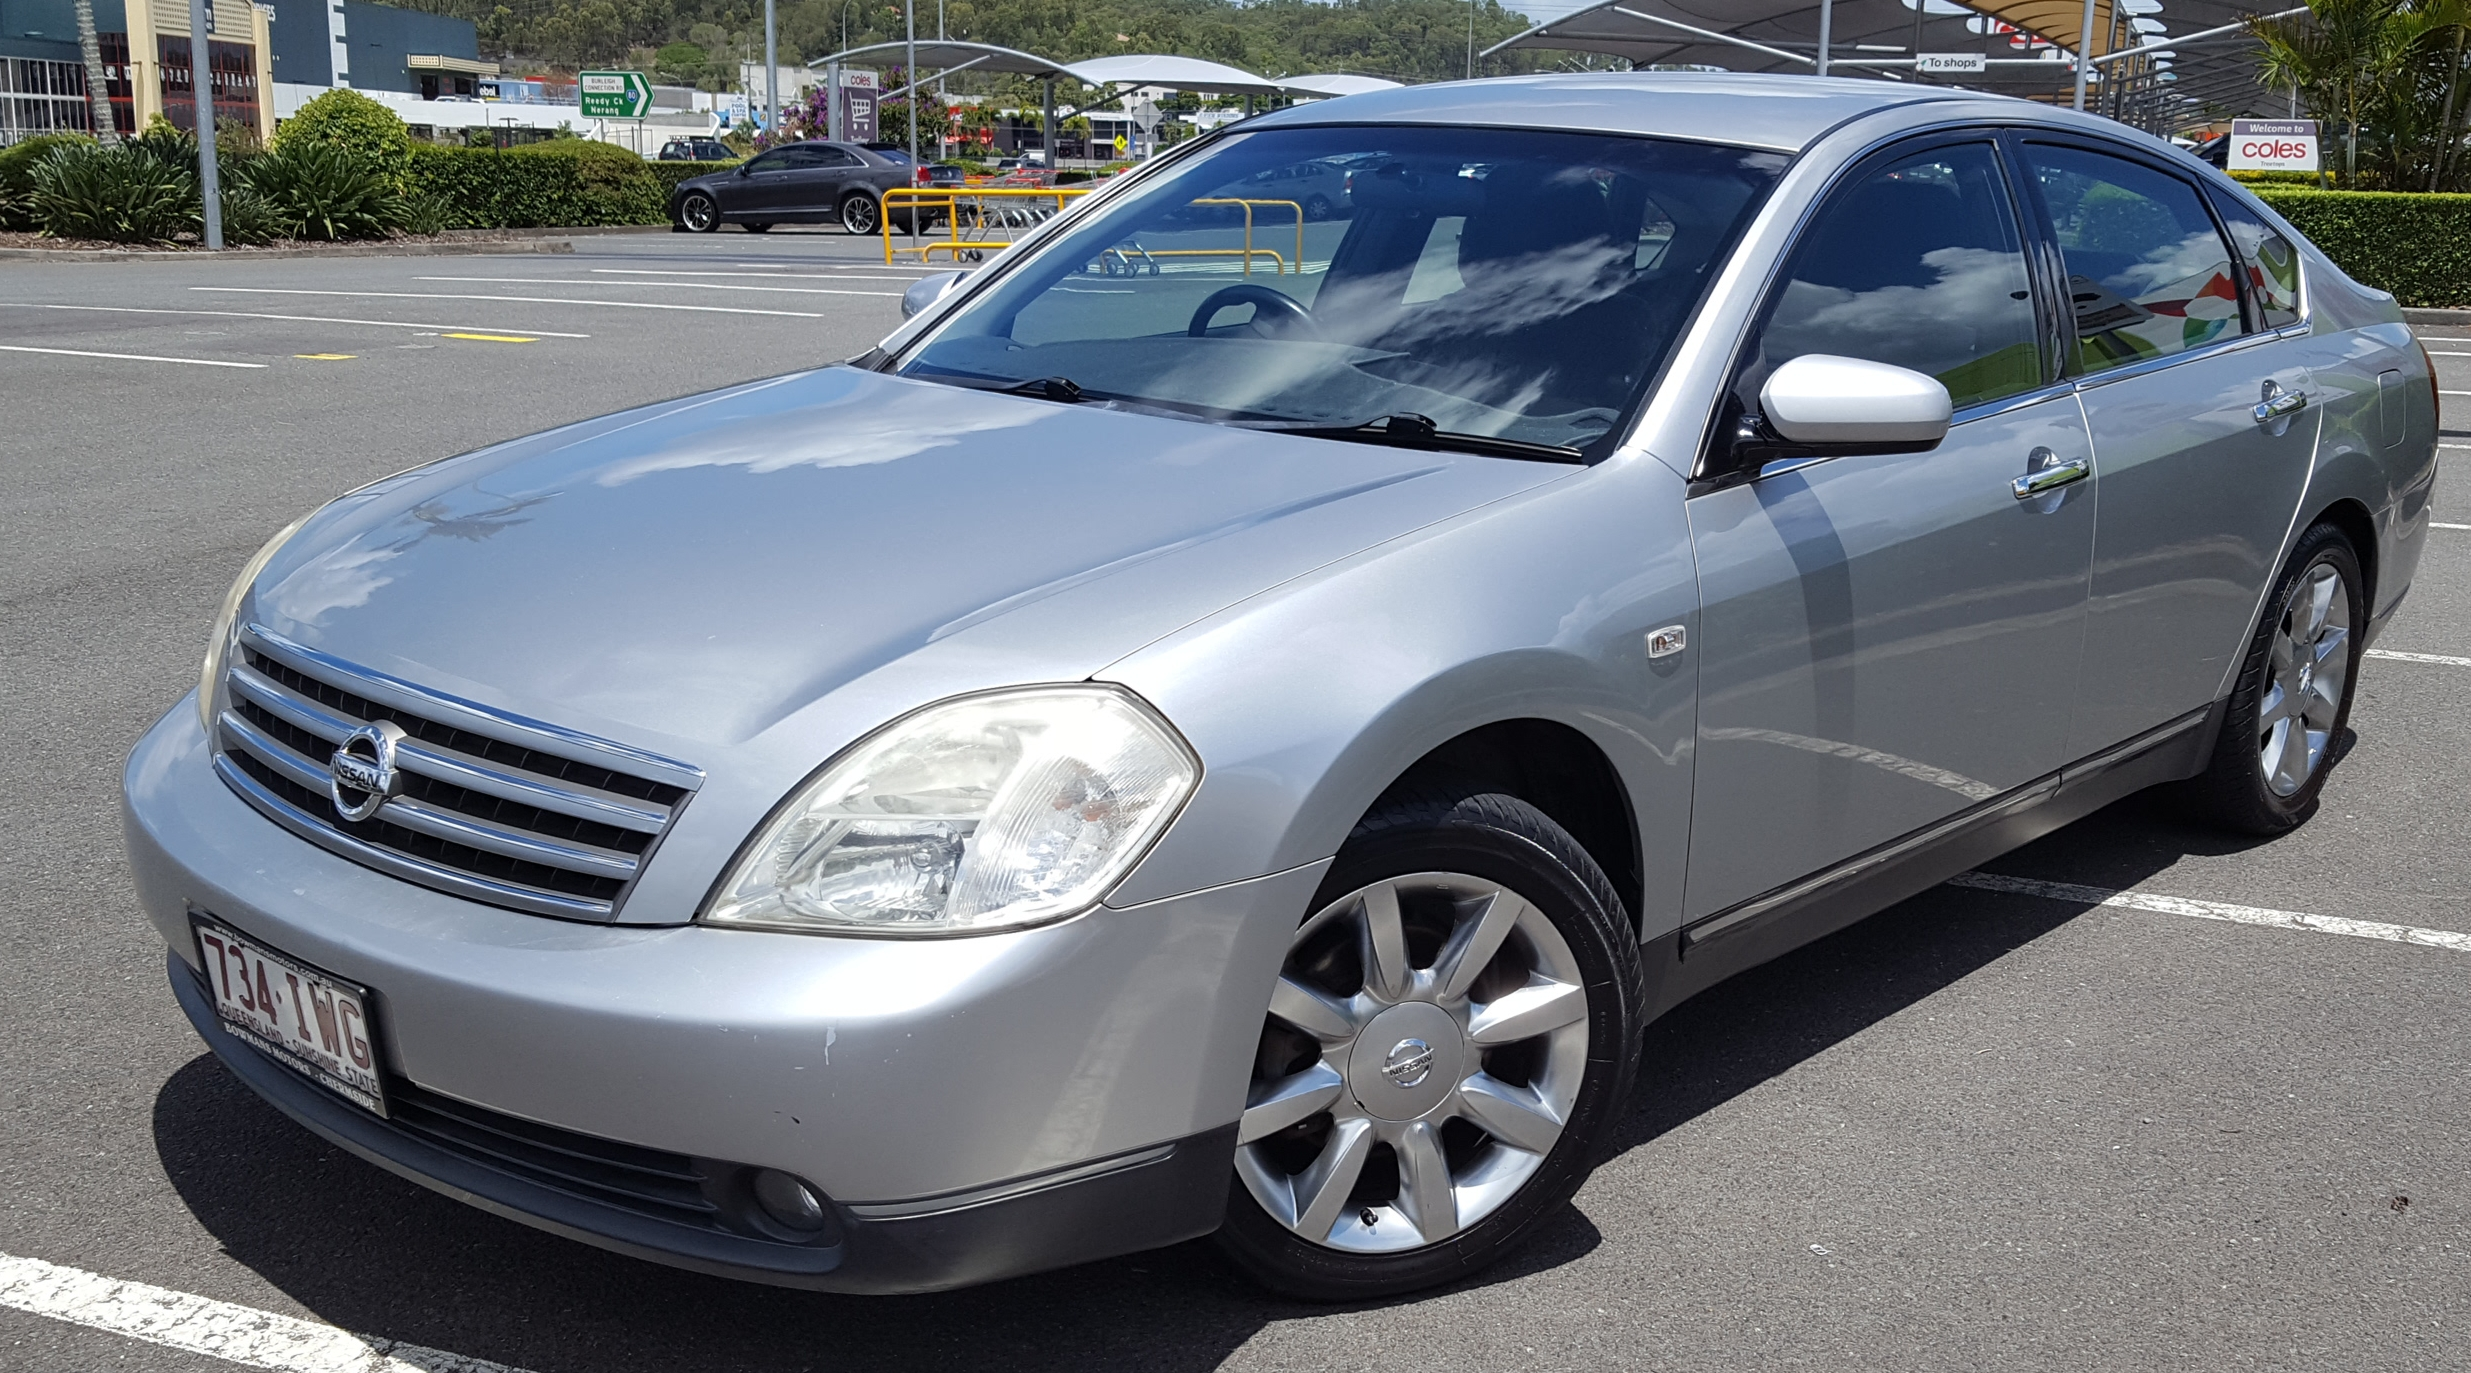 Picture of Darrin's 2004 Nissan Maxima ST-L